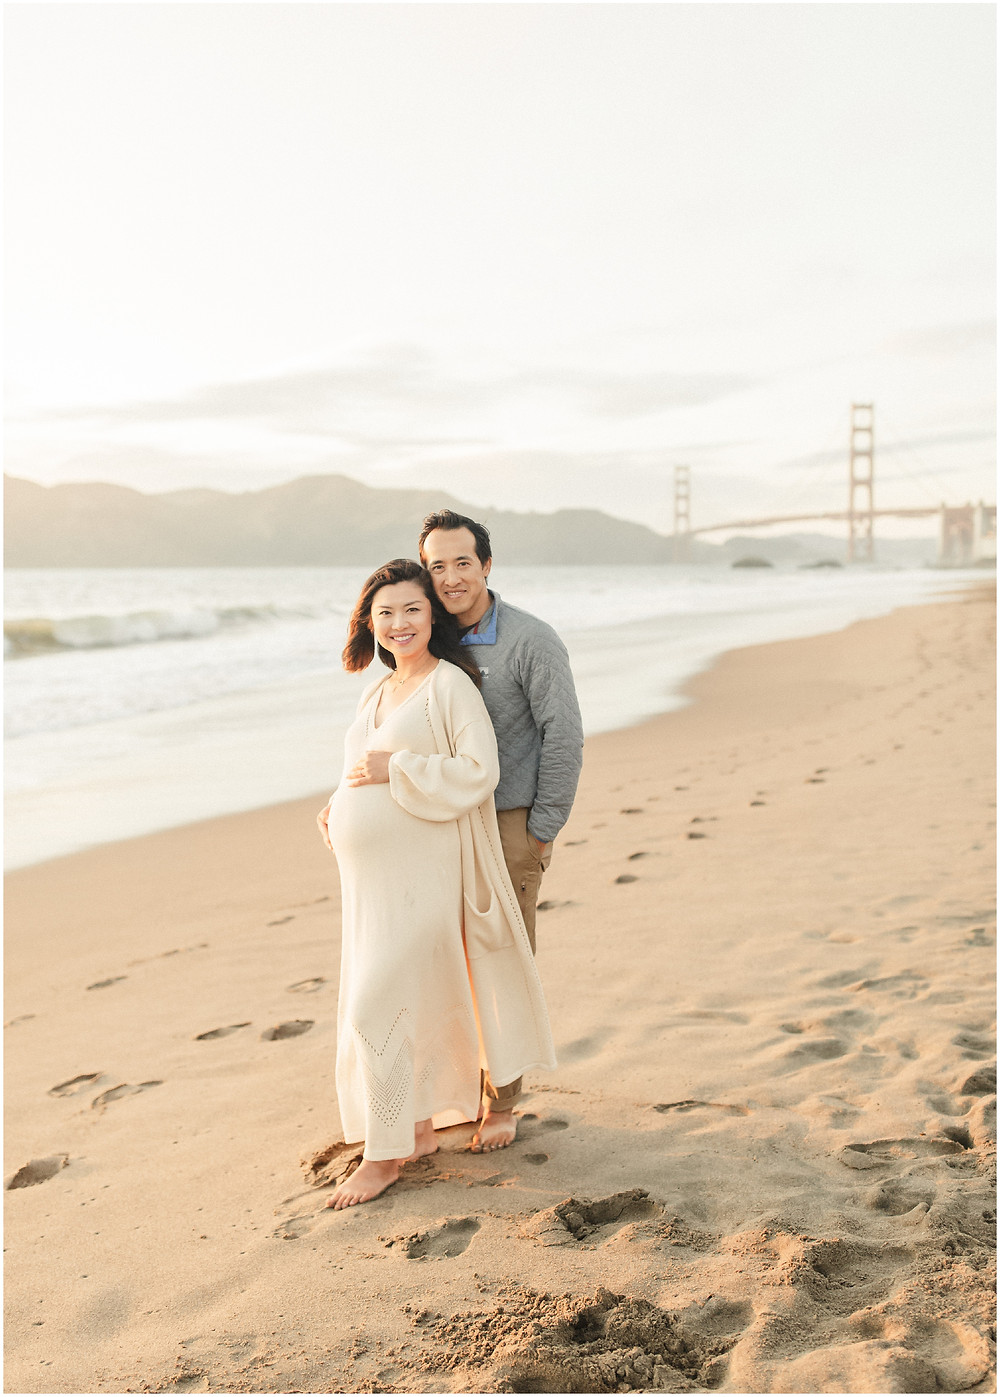 San Francisco Bay Area Baker Beach maternity photography session by fine art bright airy editorial lifestyle maternity photographer Torrey Fox